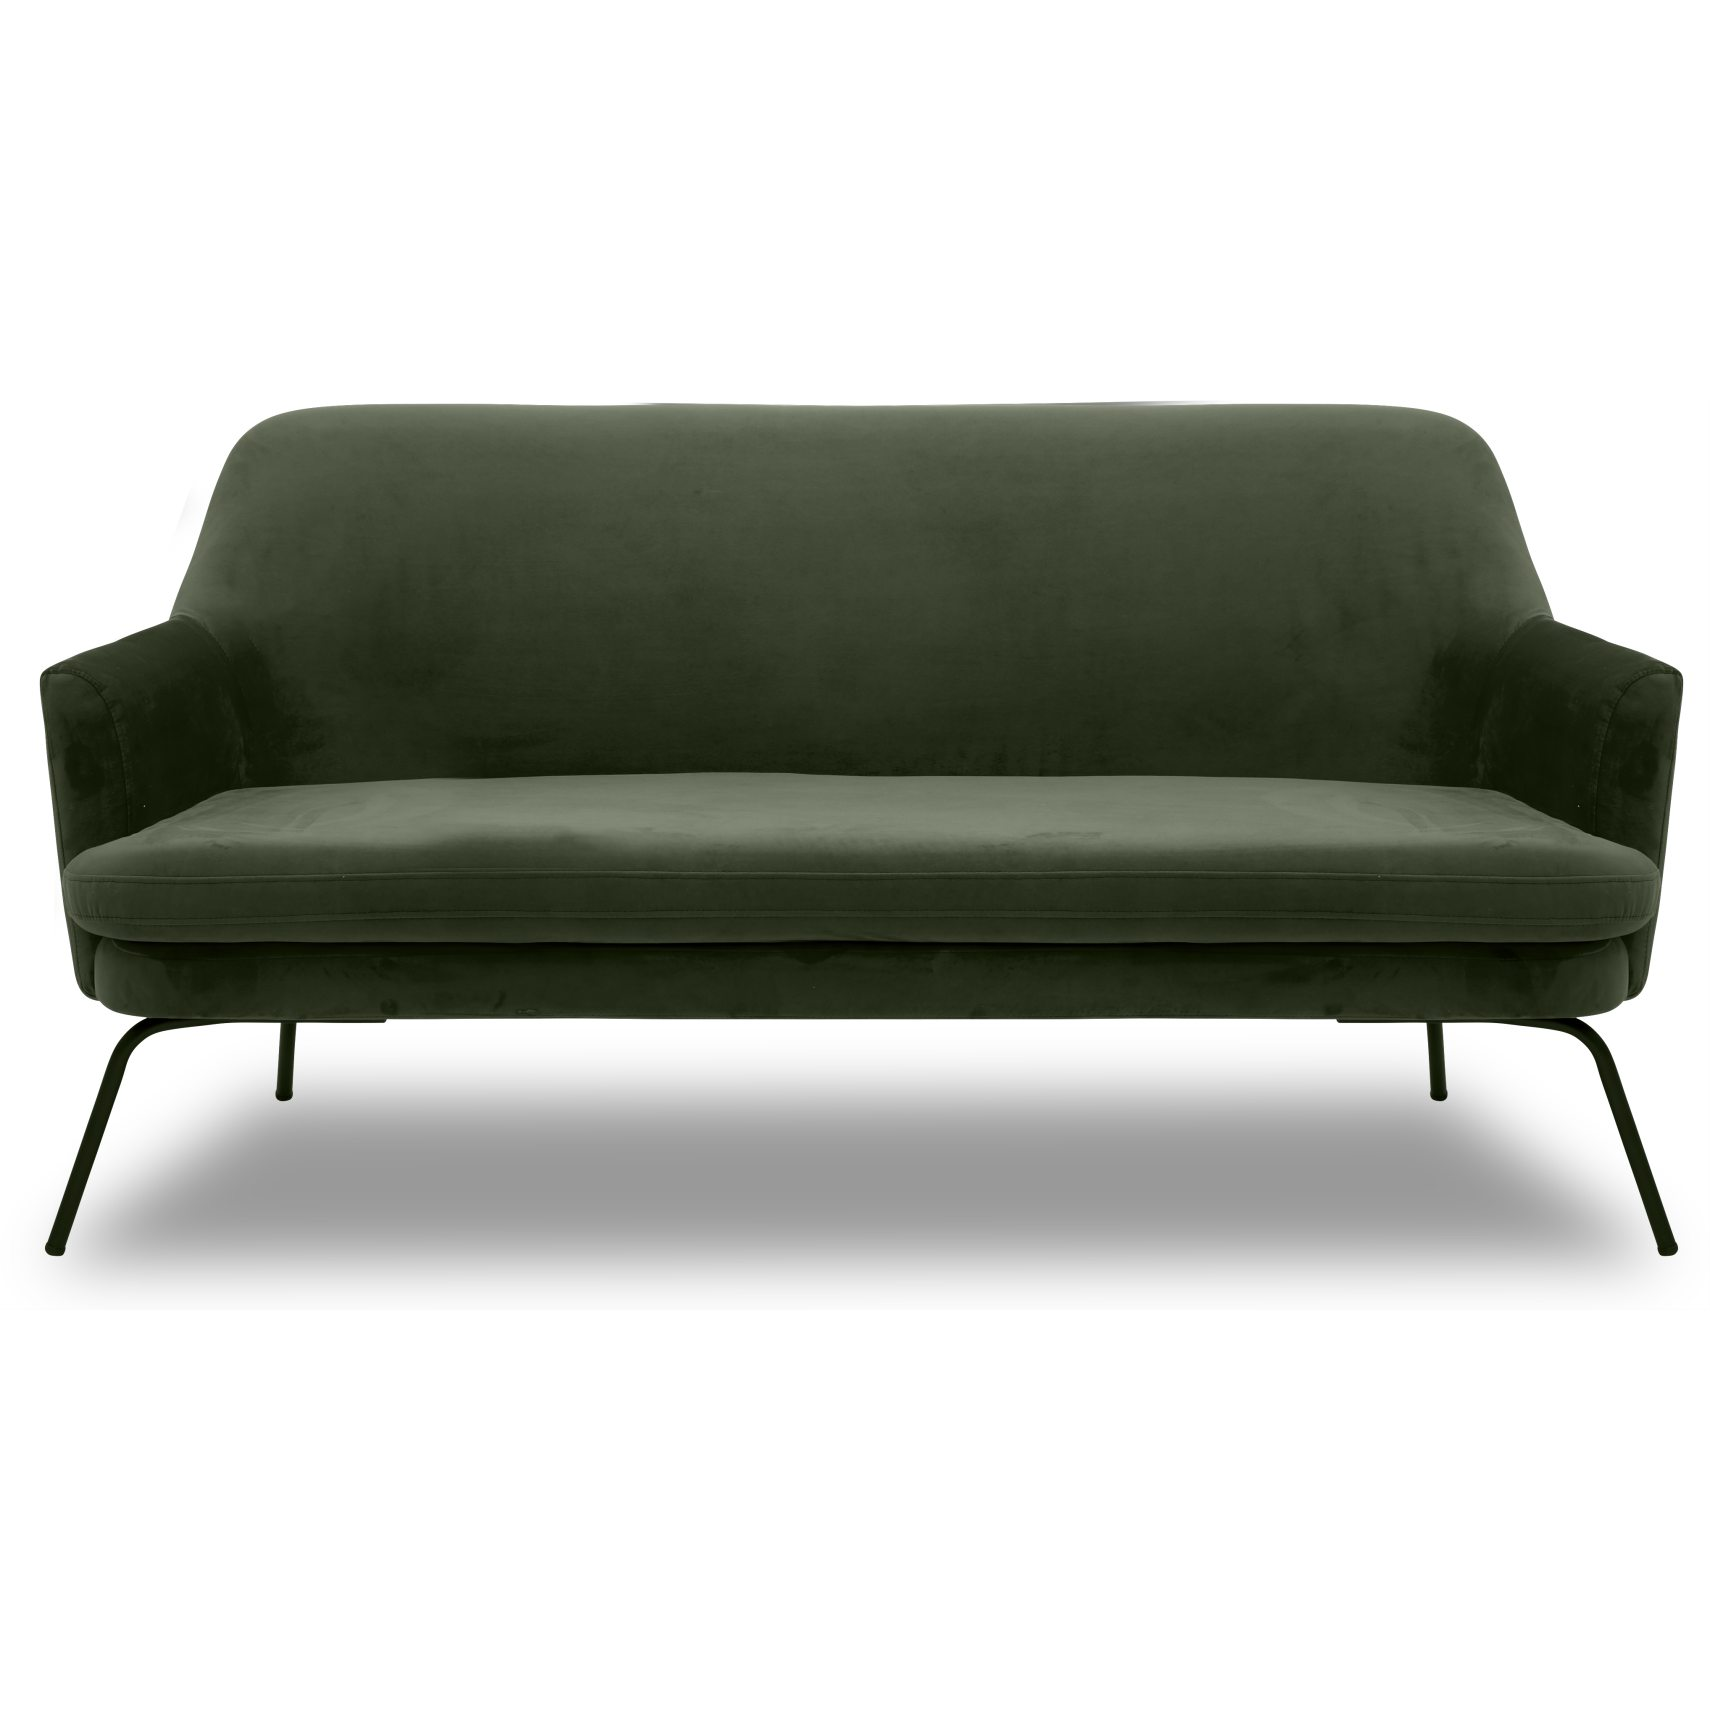 Chisa Sofa - Vic Deep Forest stof og med stel i sort metal